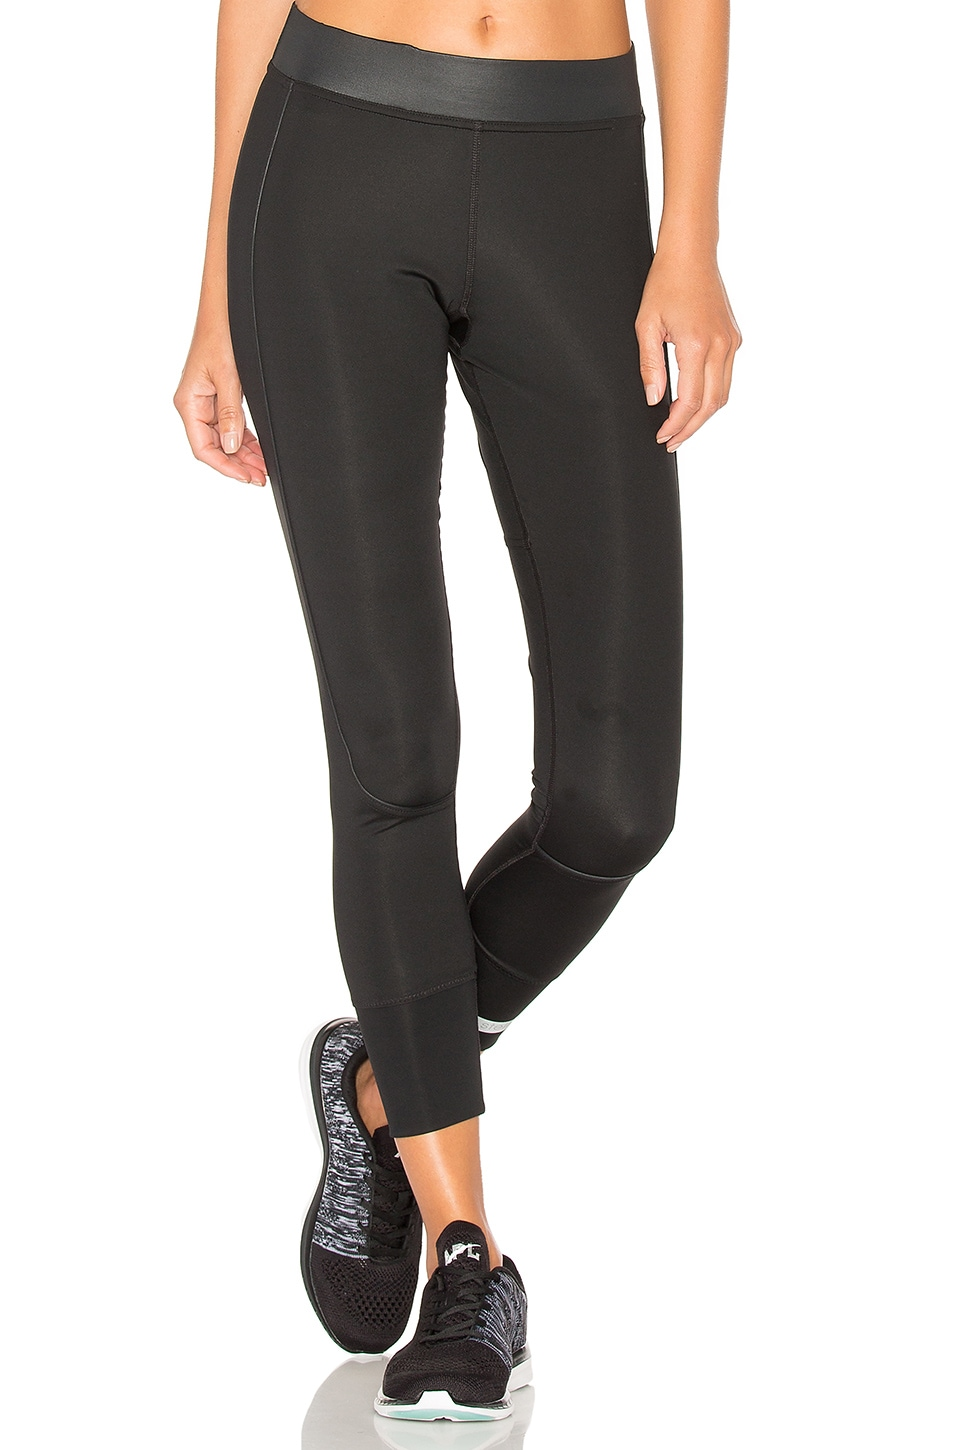 adidas by Stella McCartney The Performance 7/8 Tight in Black